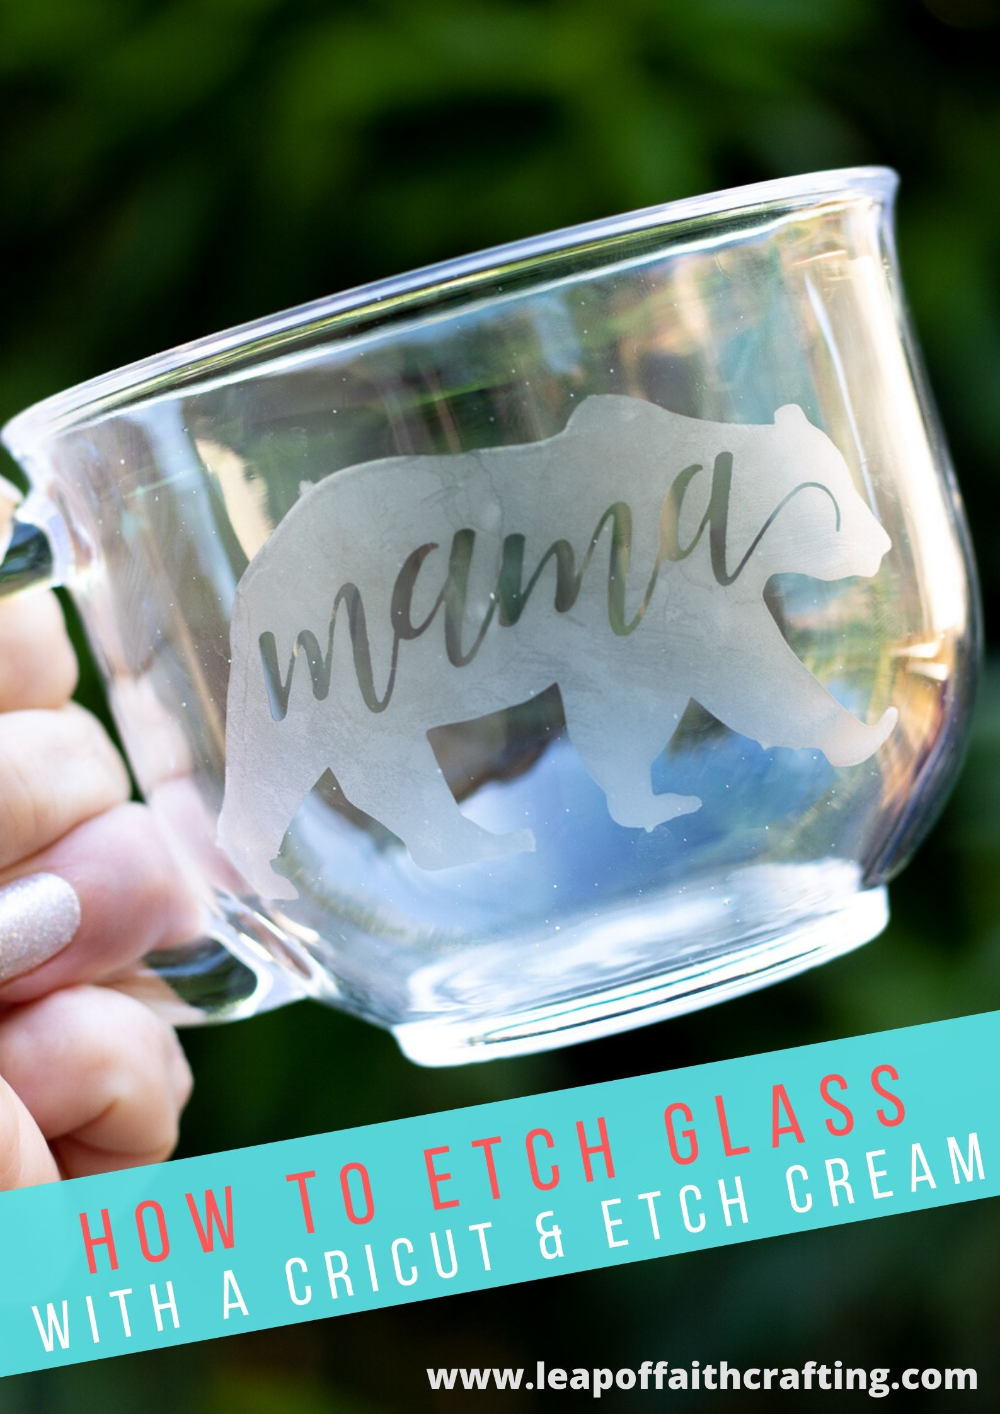 Cricut Glass Etching How To Easily Etch Glass With Armour Etch Leap Of Faith Crafting In 2020 Glass Etching Projects Glass Etching Diy Vinyl On Glass